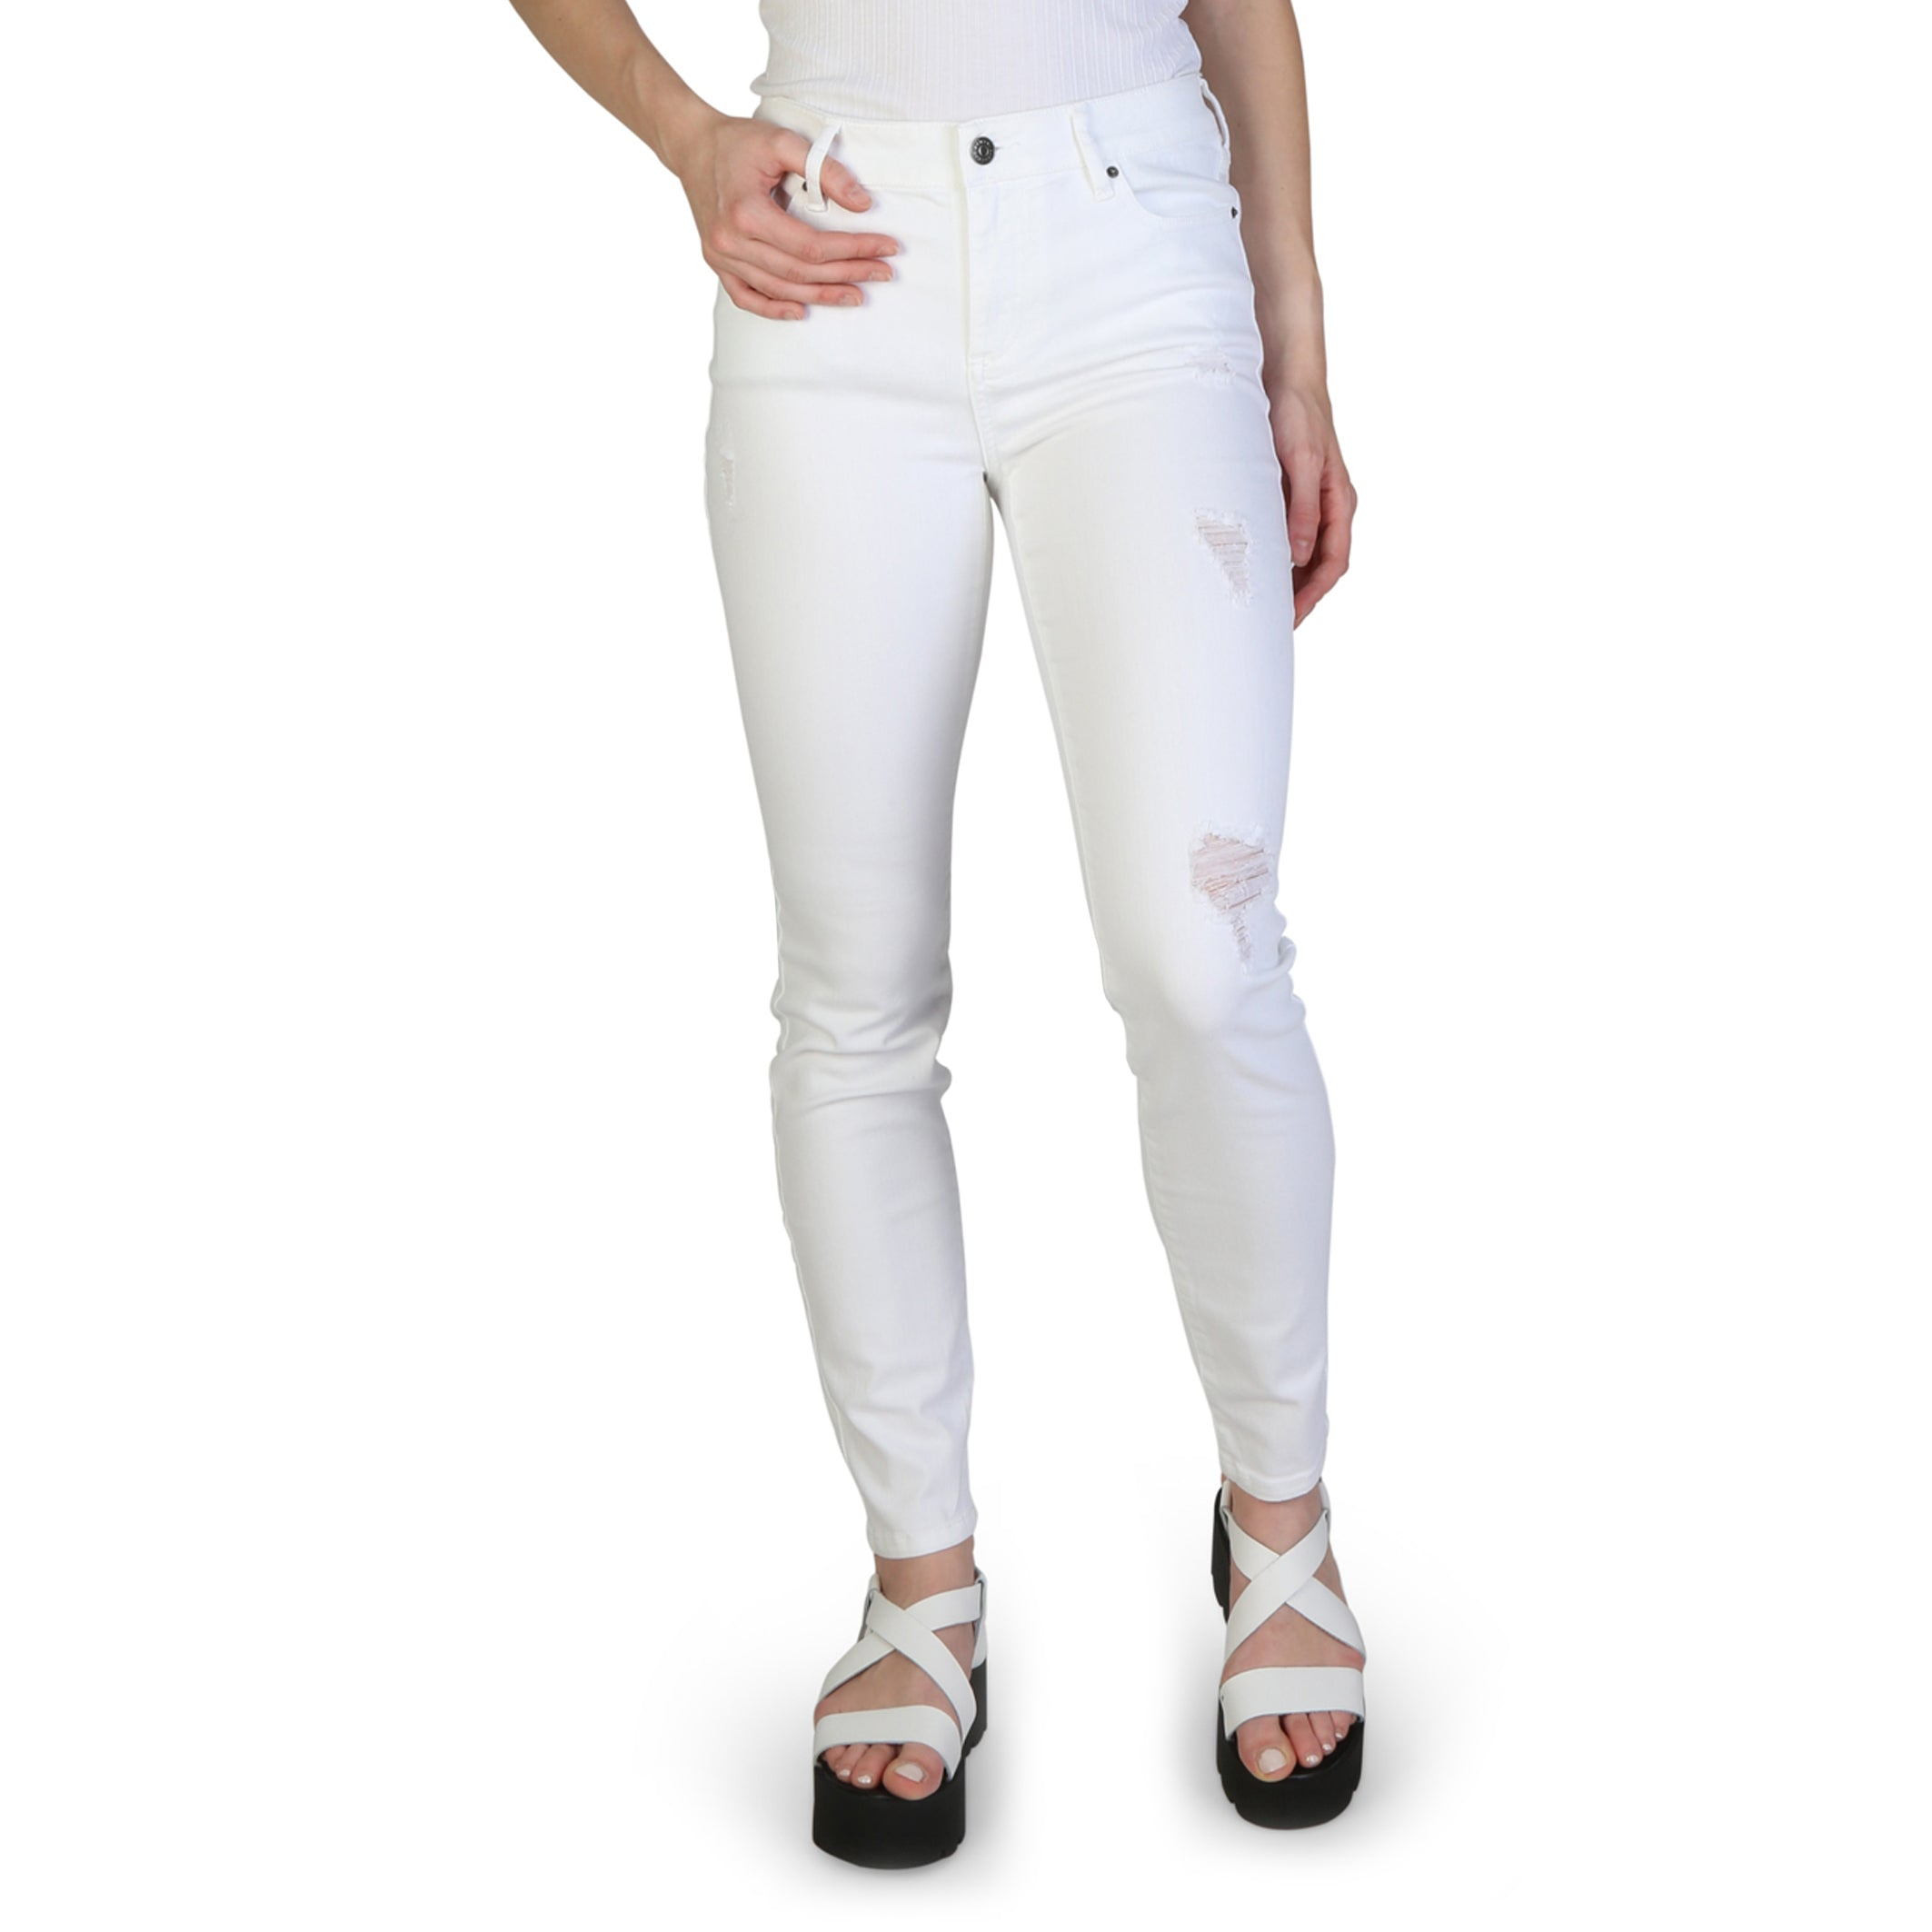 Image of Armani Exchange Womens Jeans